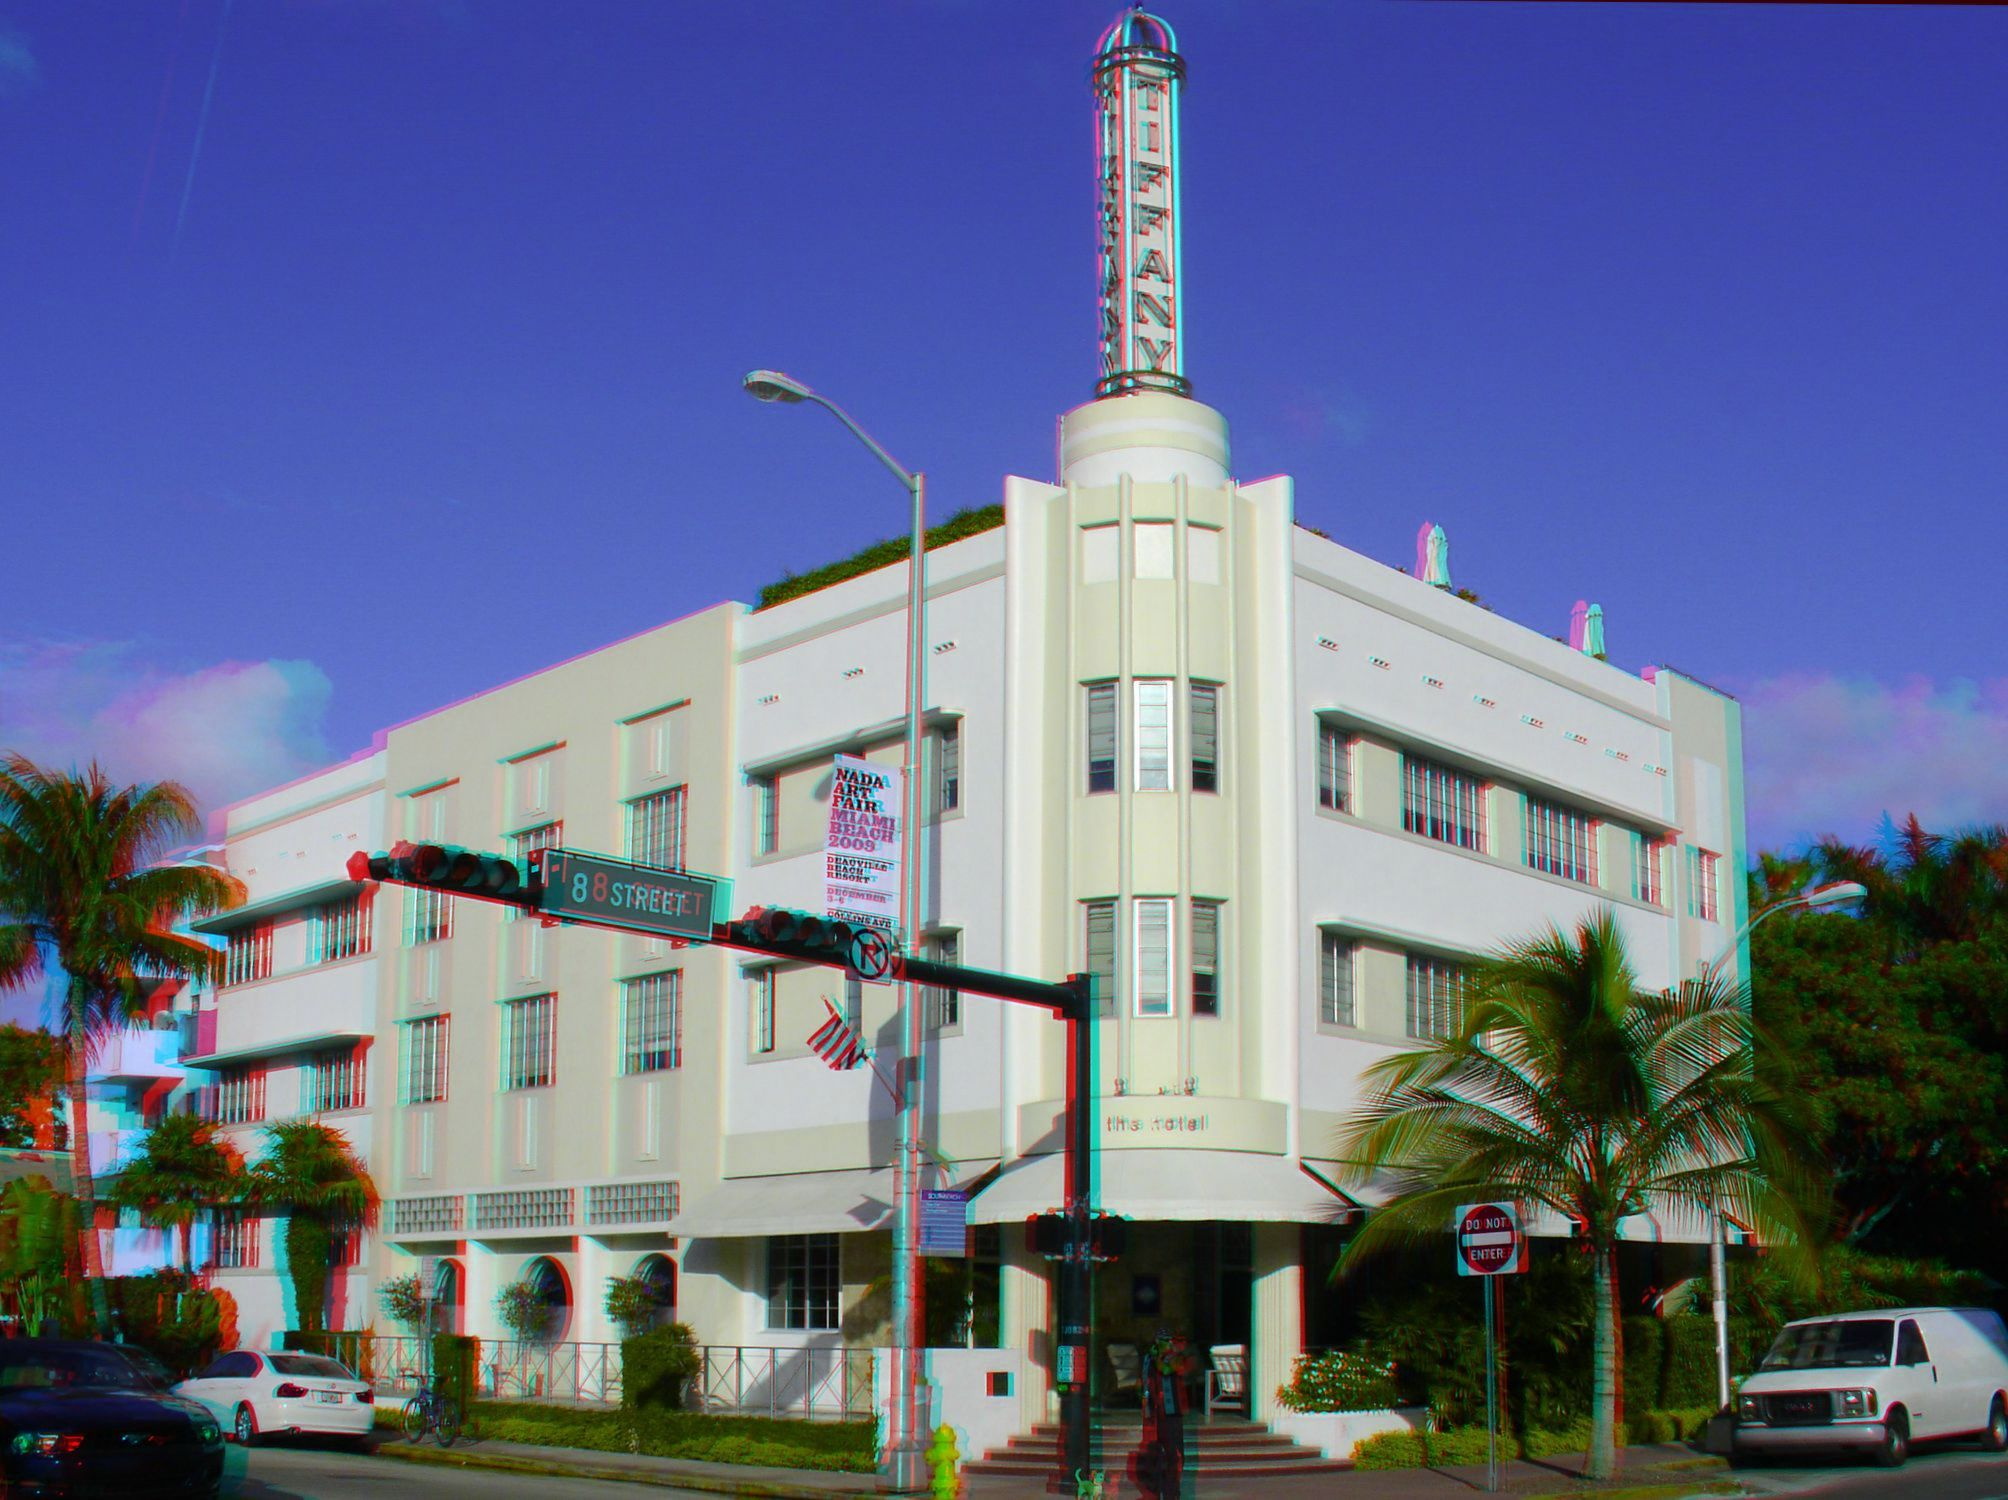 801 Collins Avenue The Hotel Originally Tiffany Built 1939 Architect L Murray Dixon Style Streamline Moderne Google Anaglyph